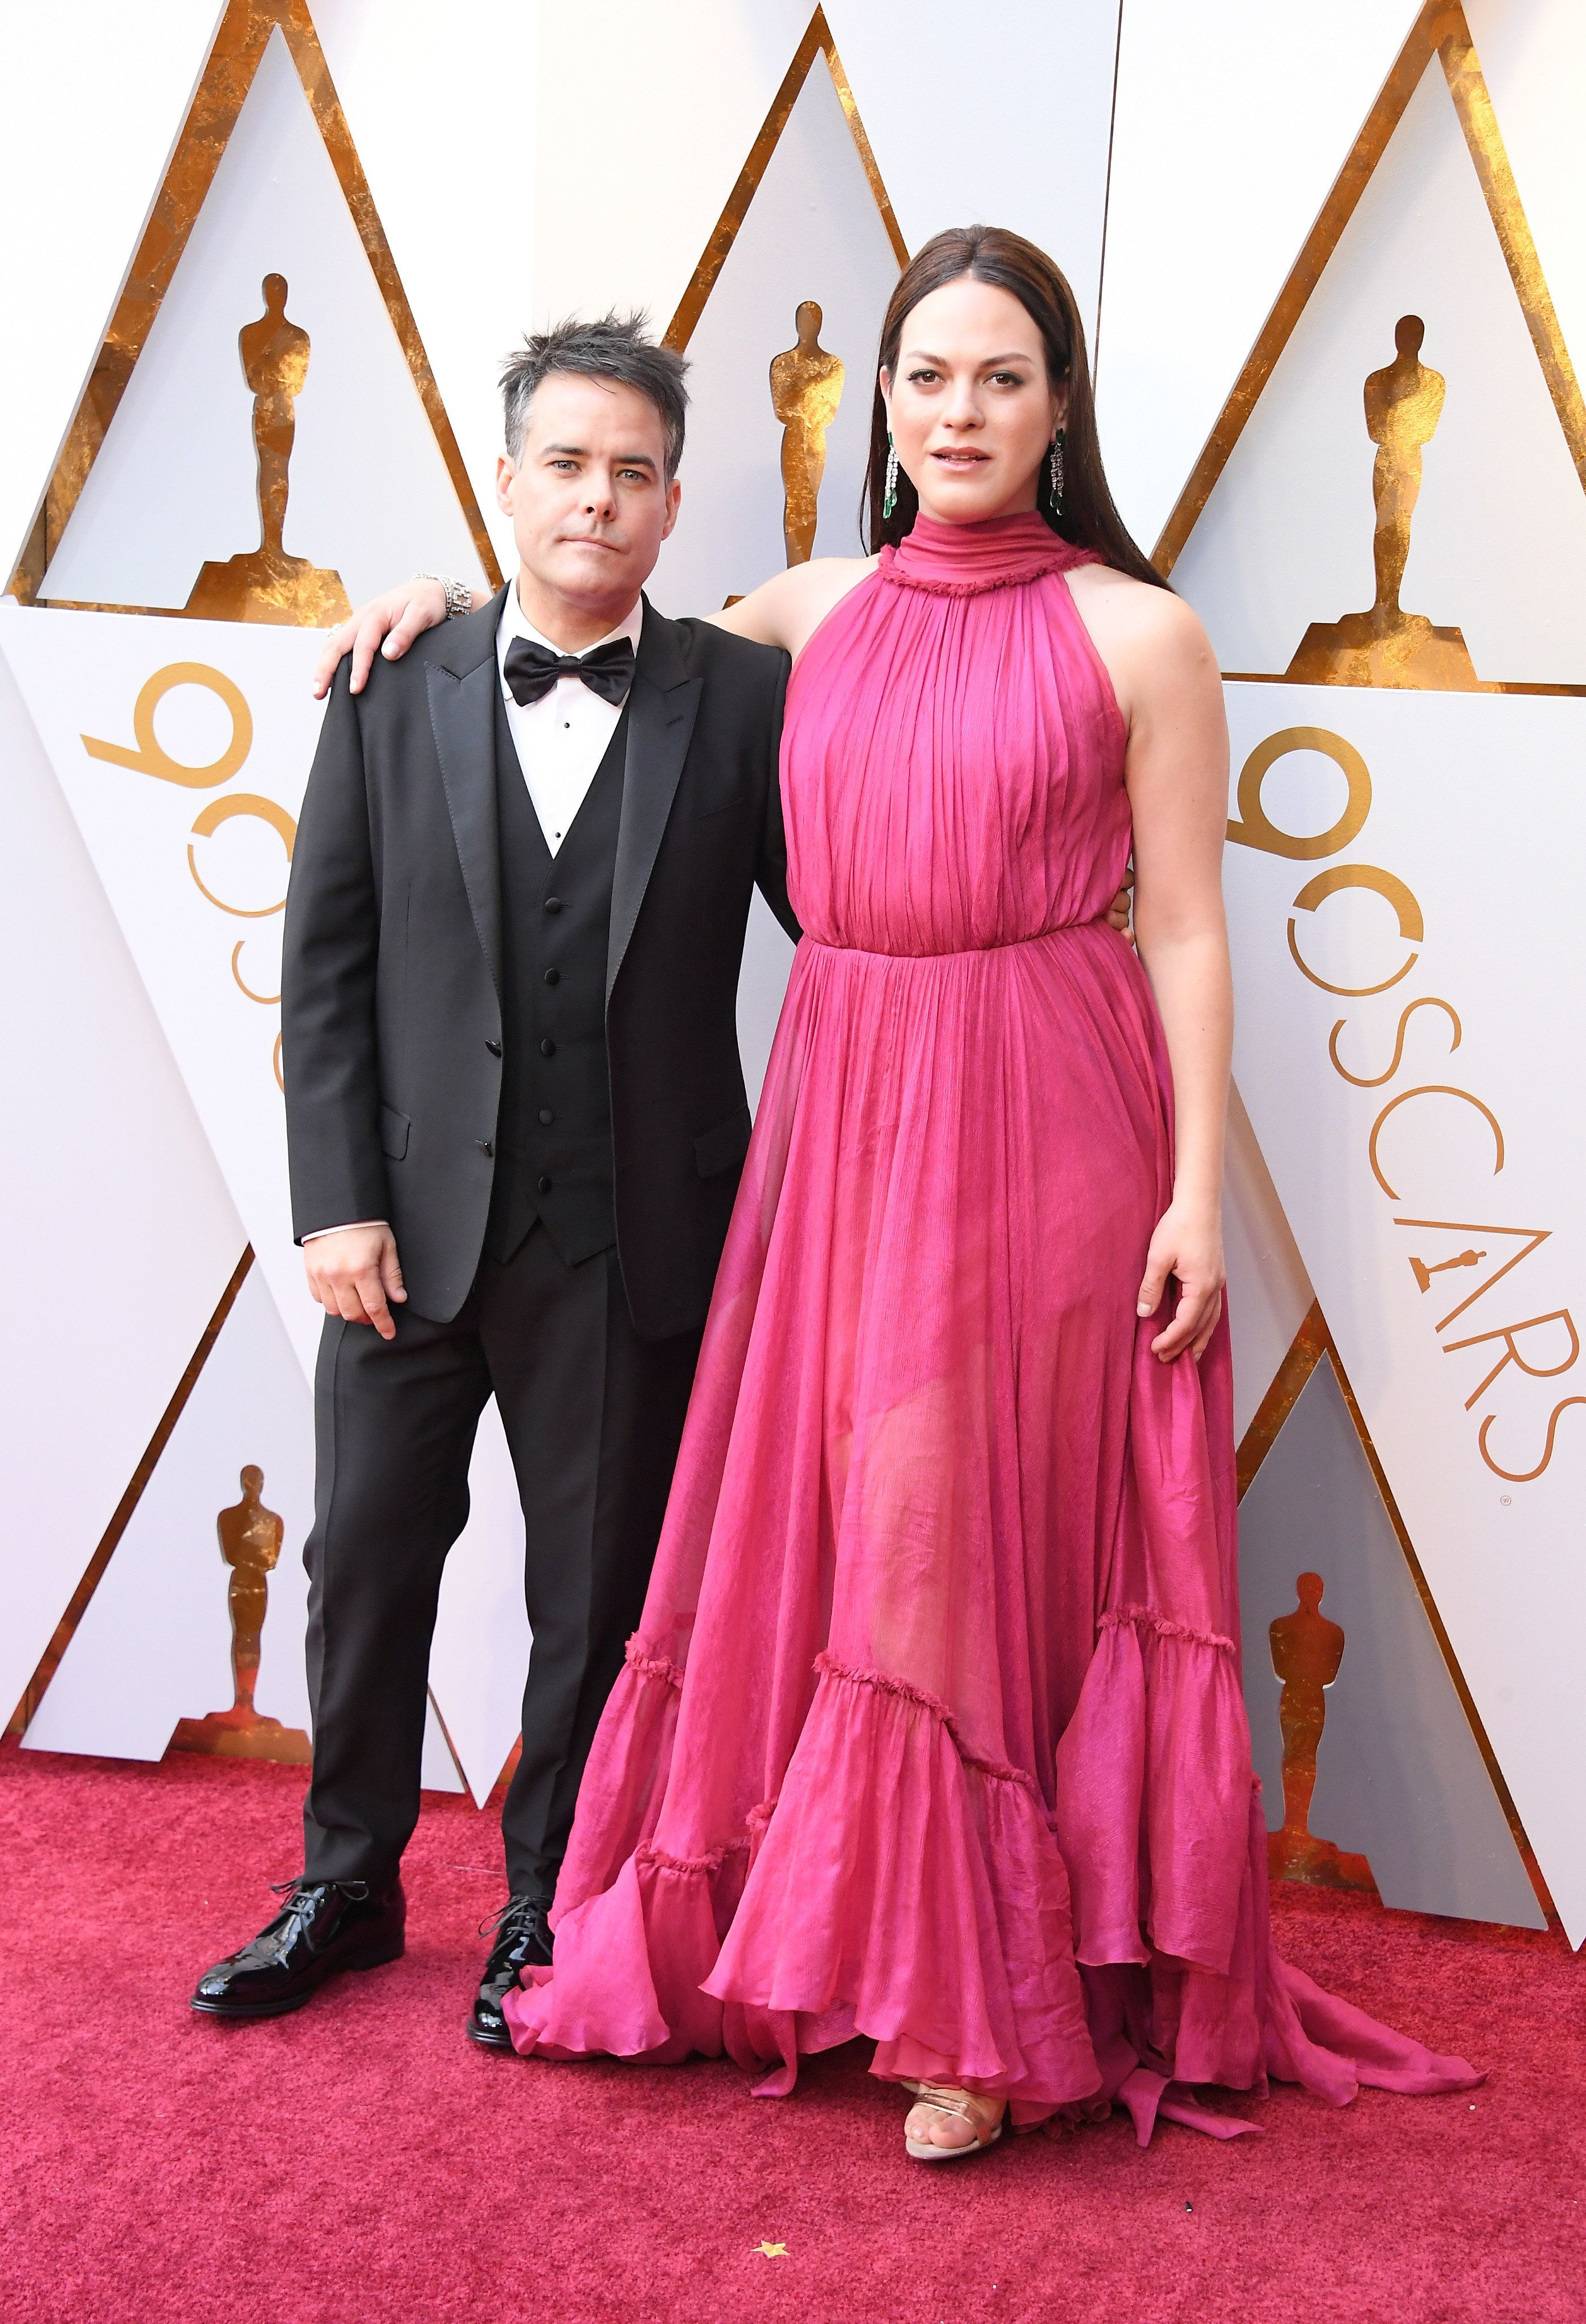 Chile's 'A Fantastic Woman' Just Made Transgender Oscars